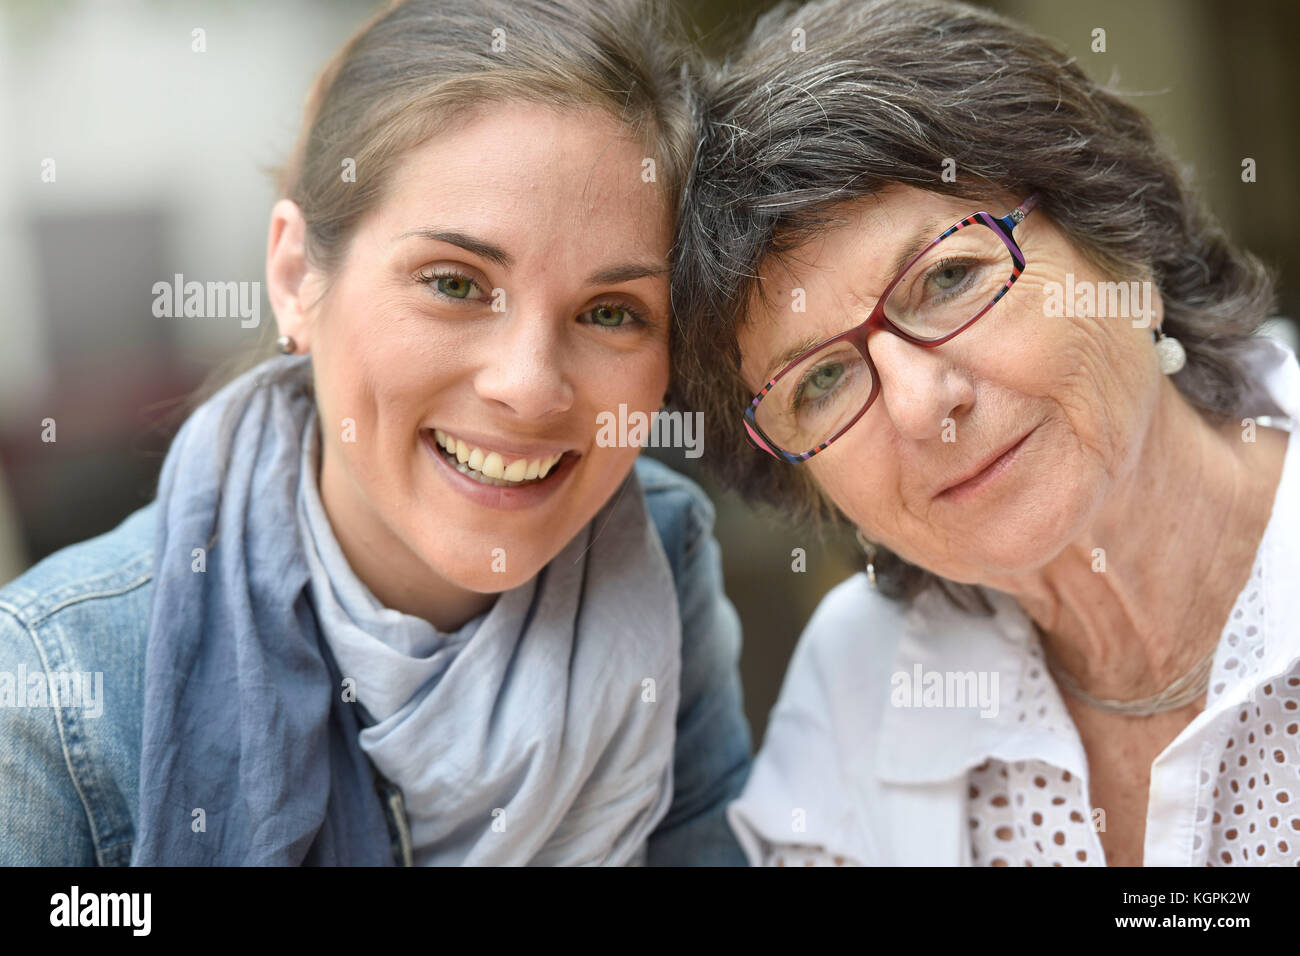 Portrait of elderly woman with home carer - Stock Image